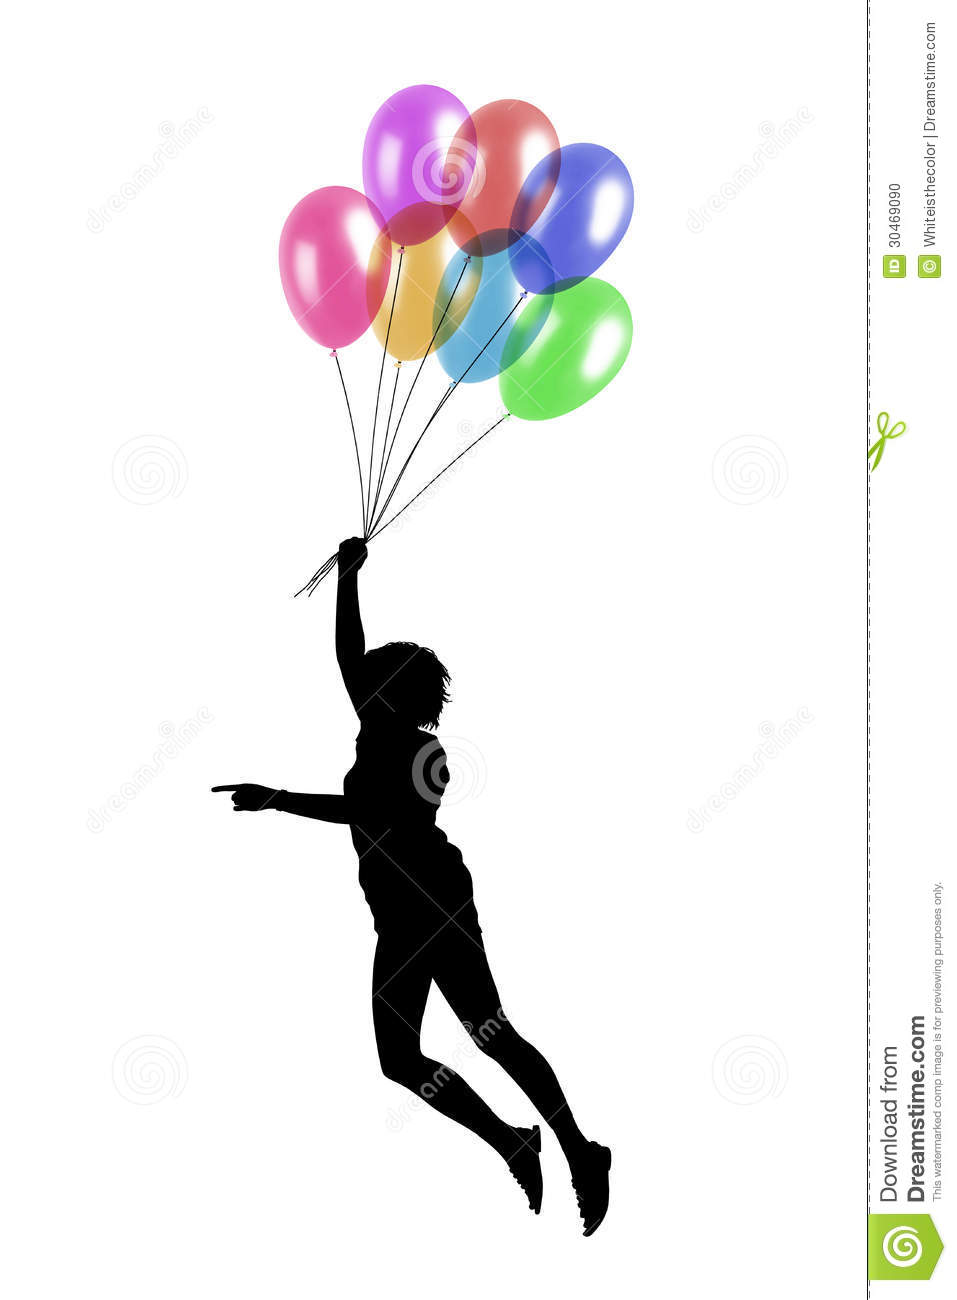 Young Woman Flying With Balloons Stock Photo - Image: 30469090